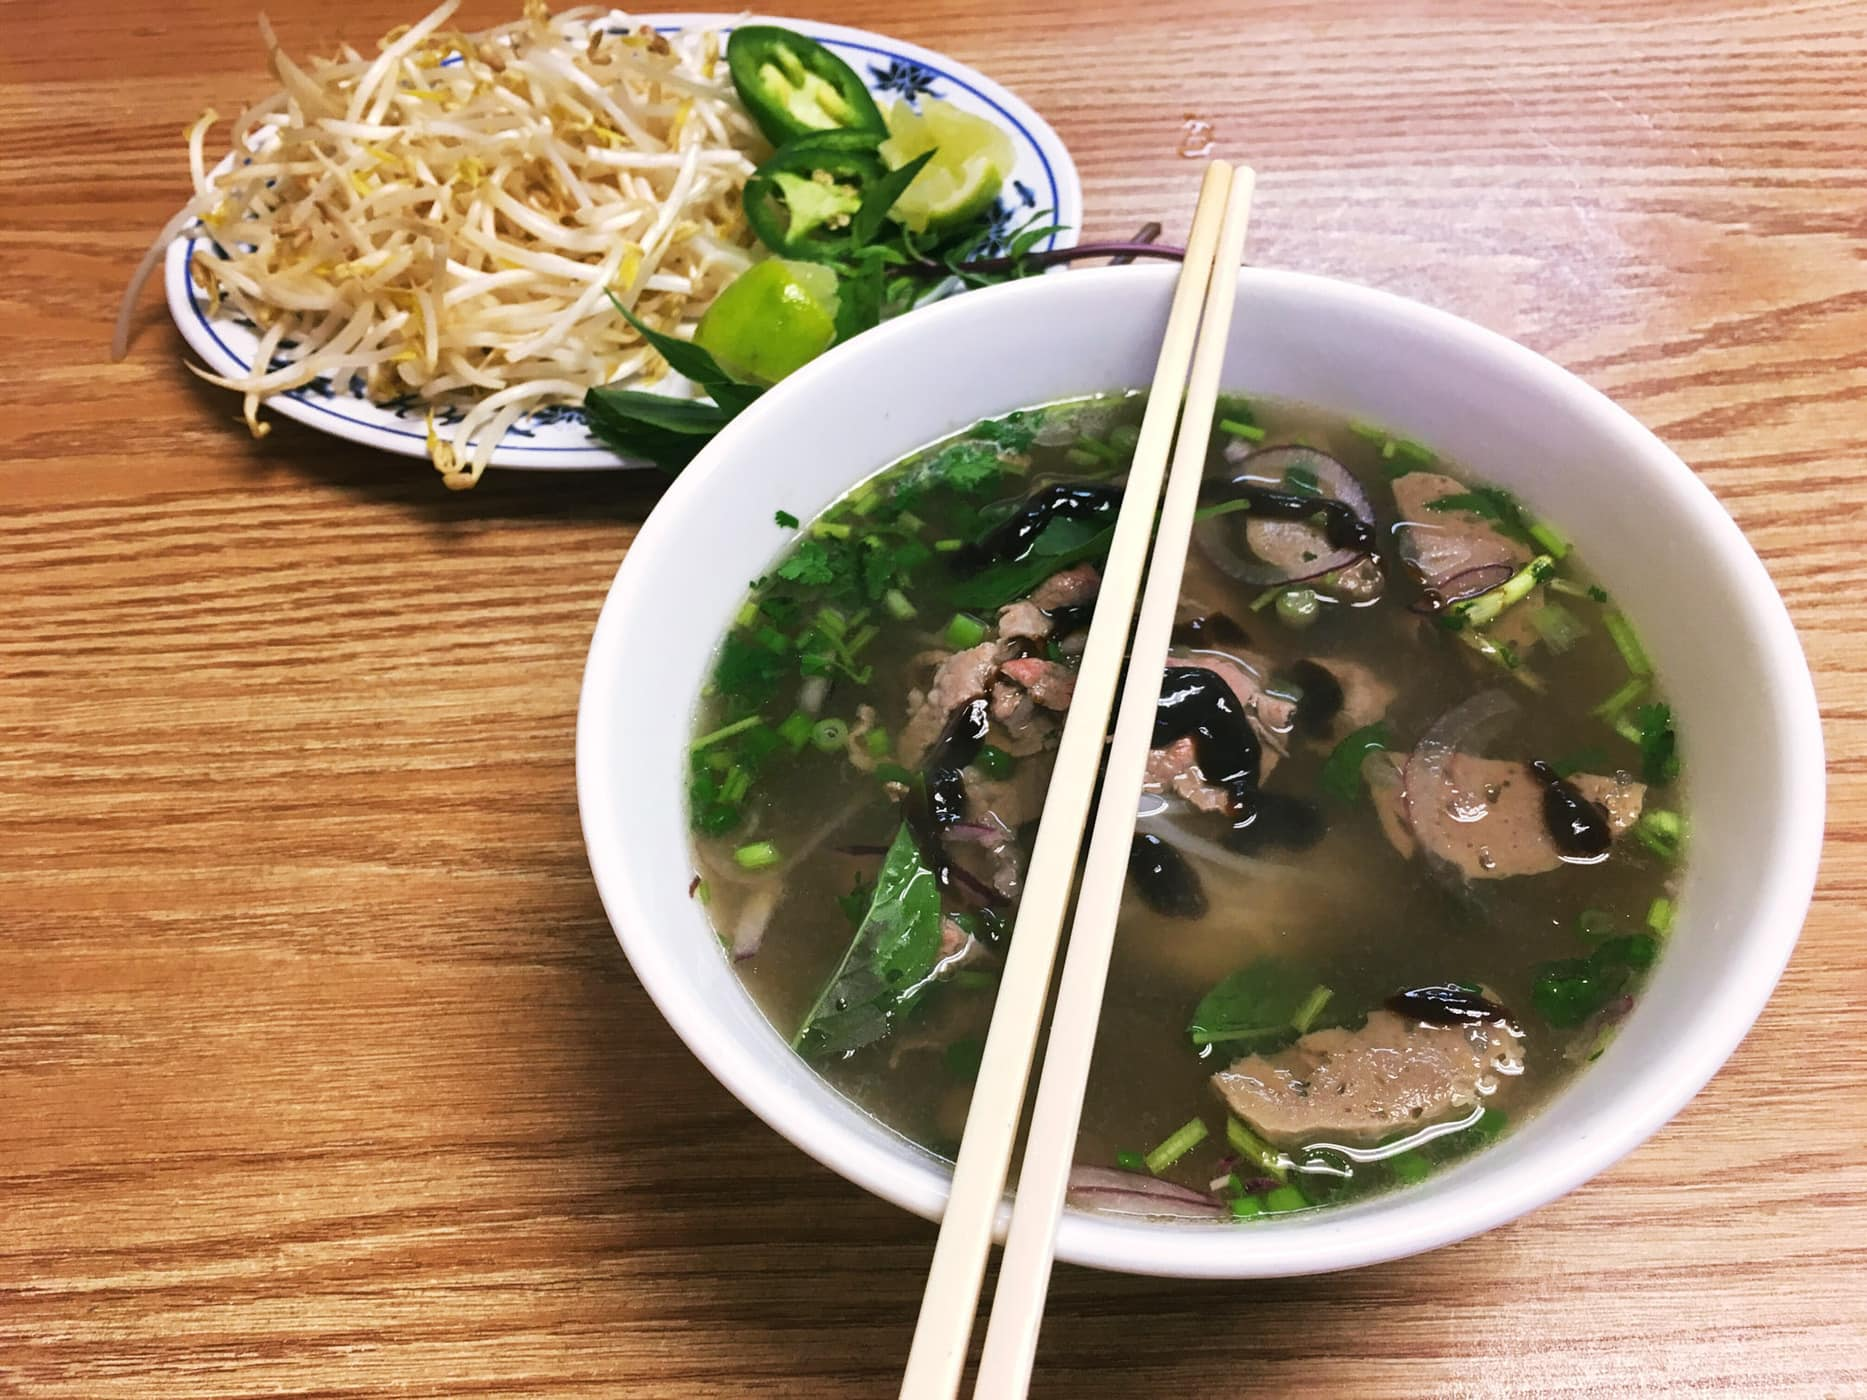 Pho Tai Bo Vien (noodle soup with eye round steak and meatballs) at Thanh Nhi in Austin, Texas.